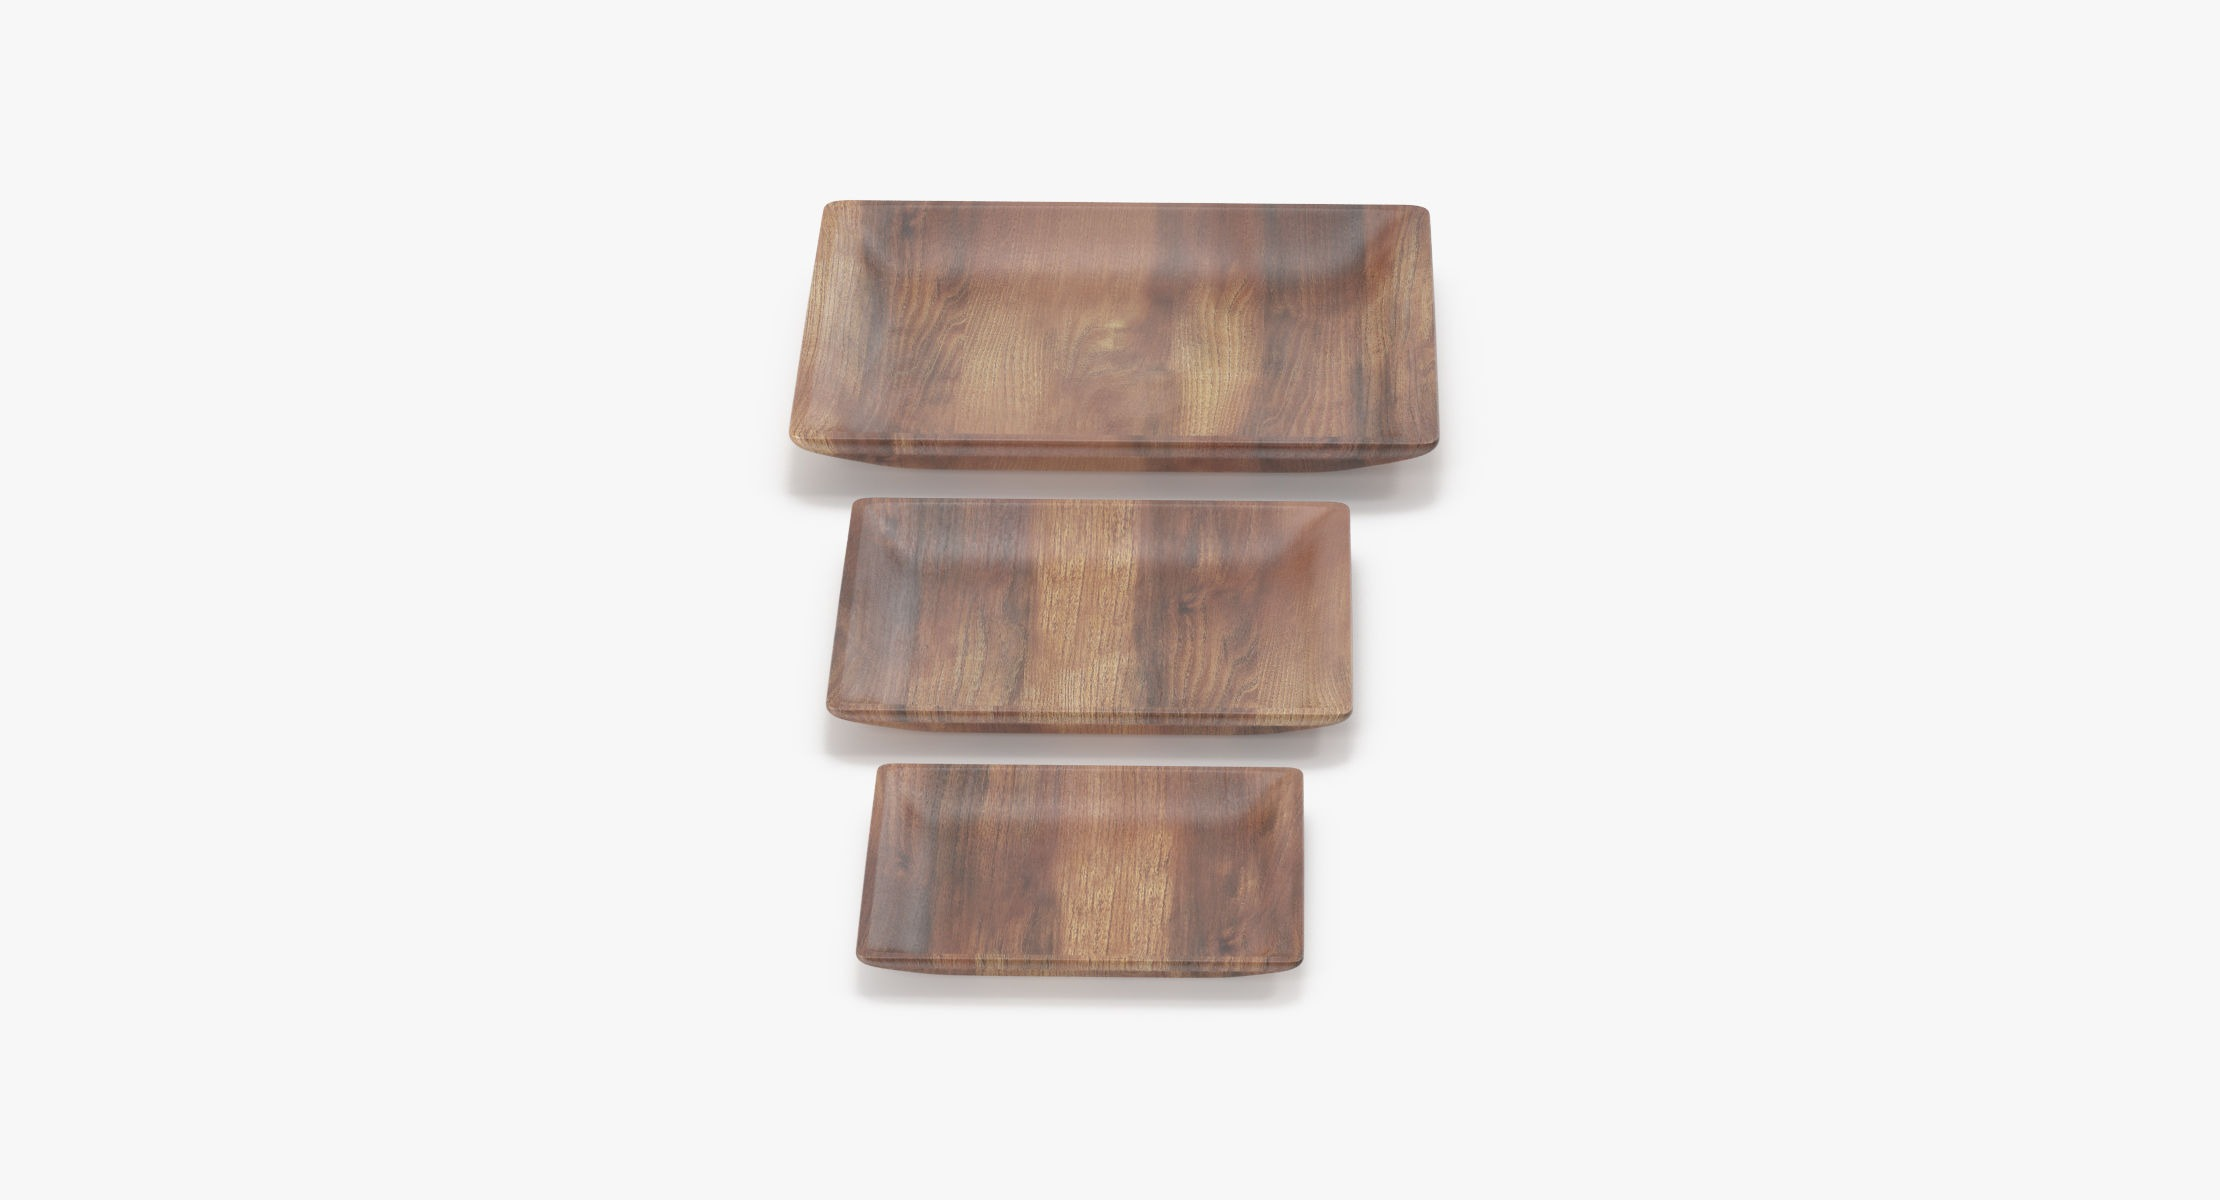 Wooden Serving Plate Square - reel 1